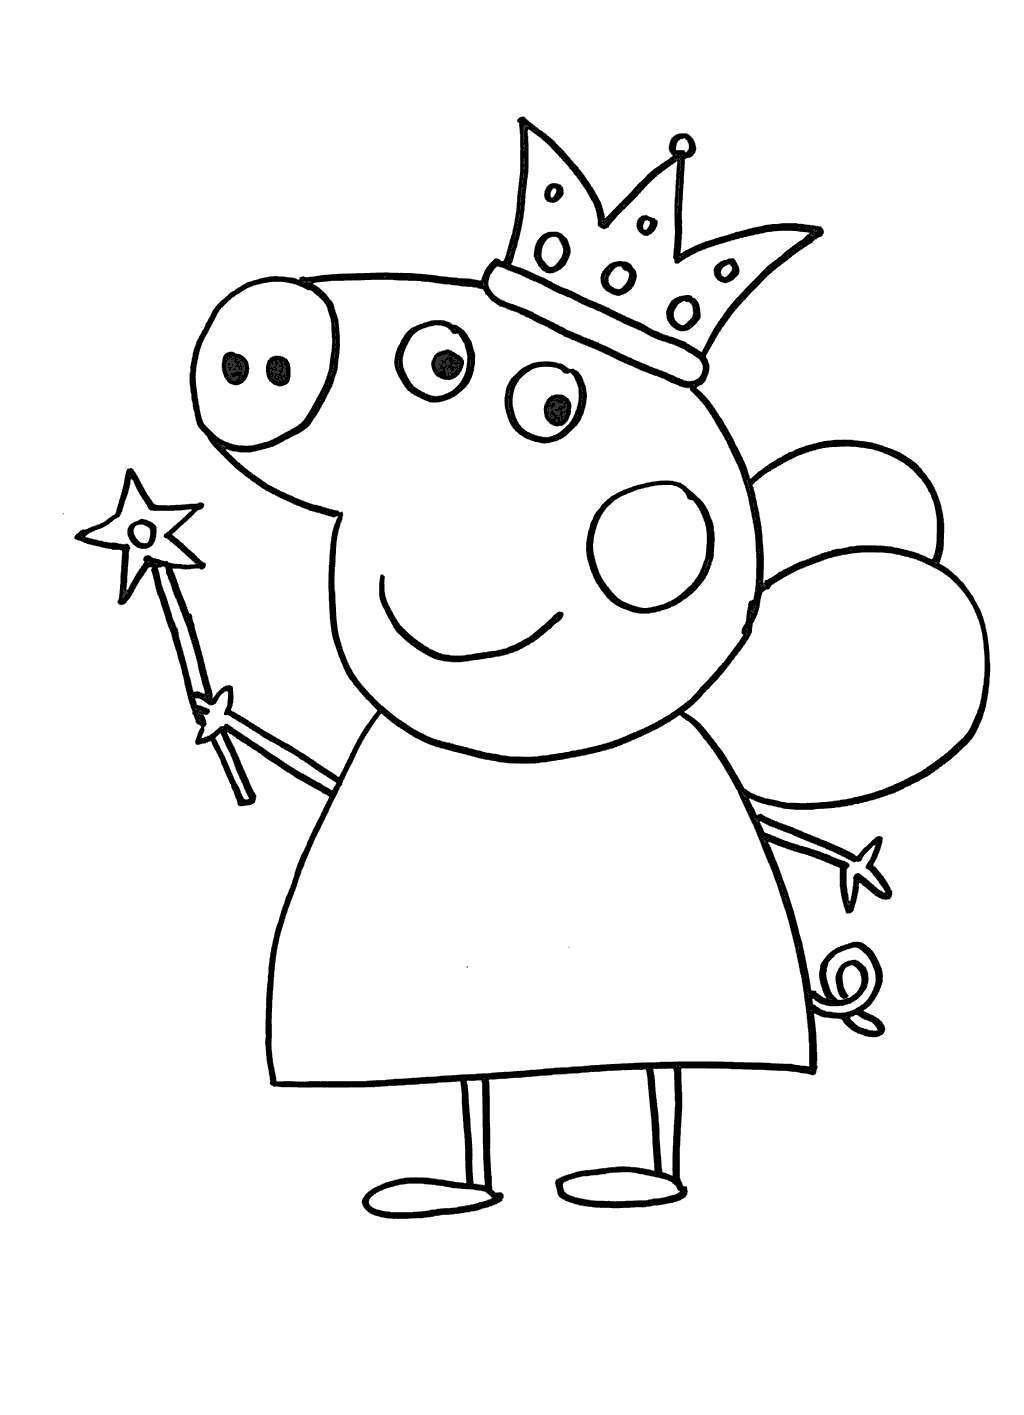 Free Peppa Pig Coloring Pages Worksheet printable